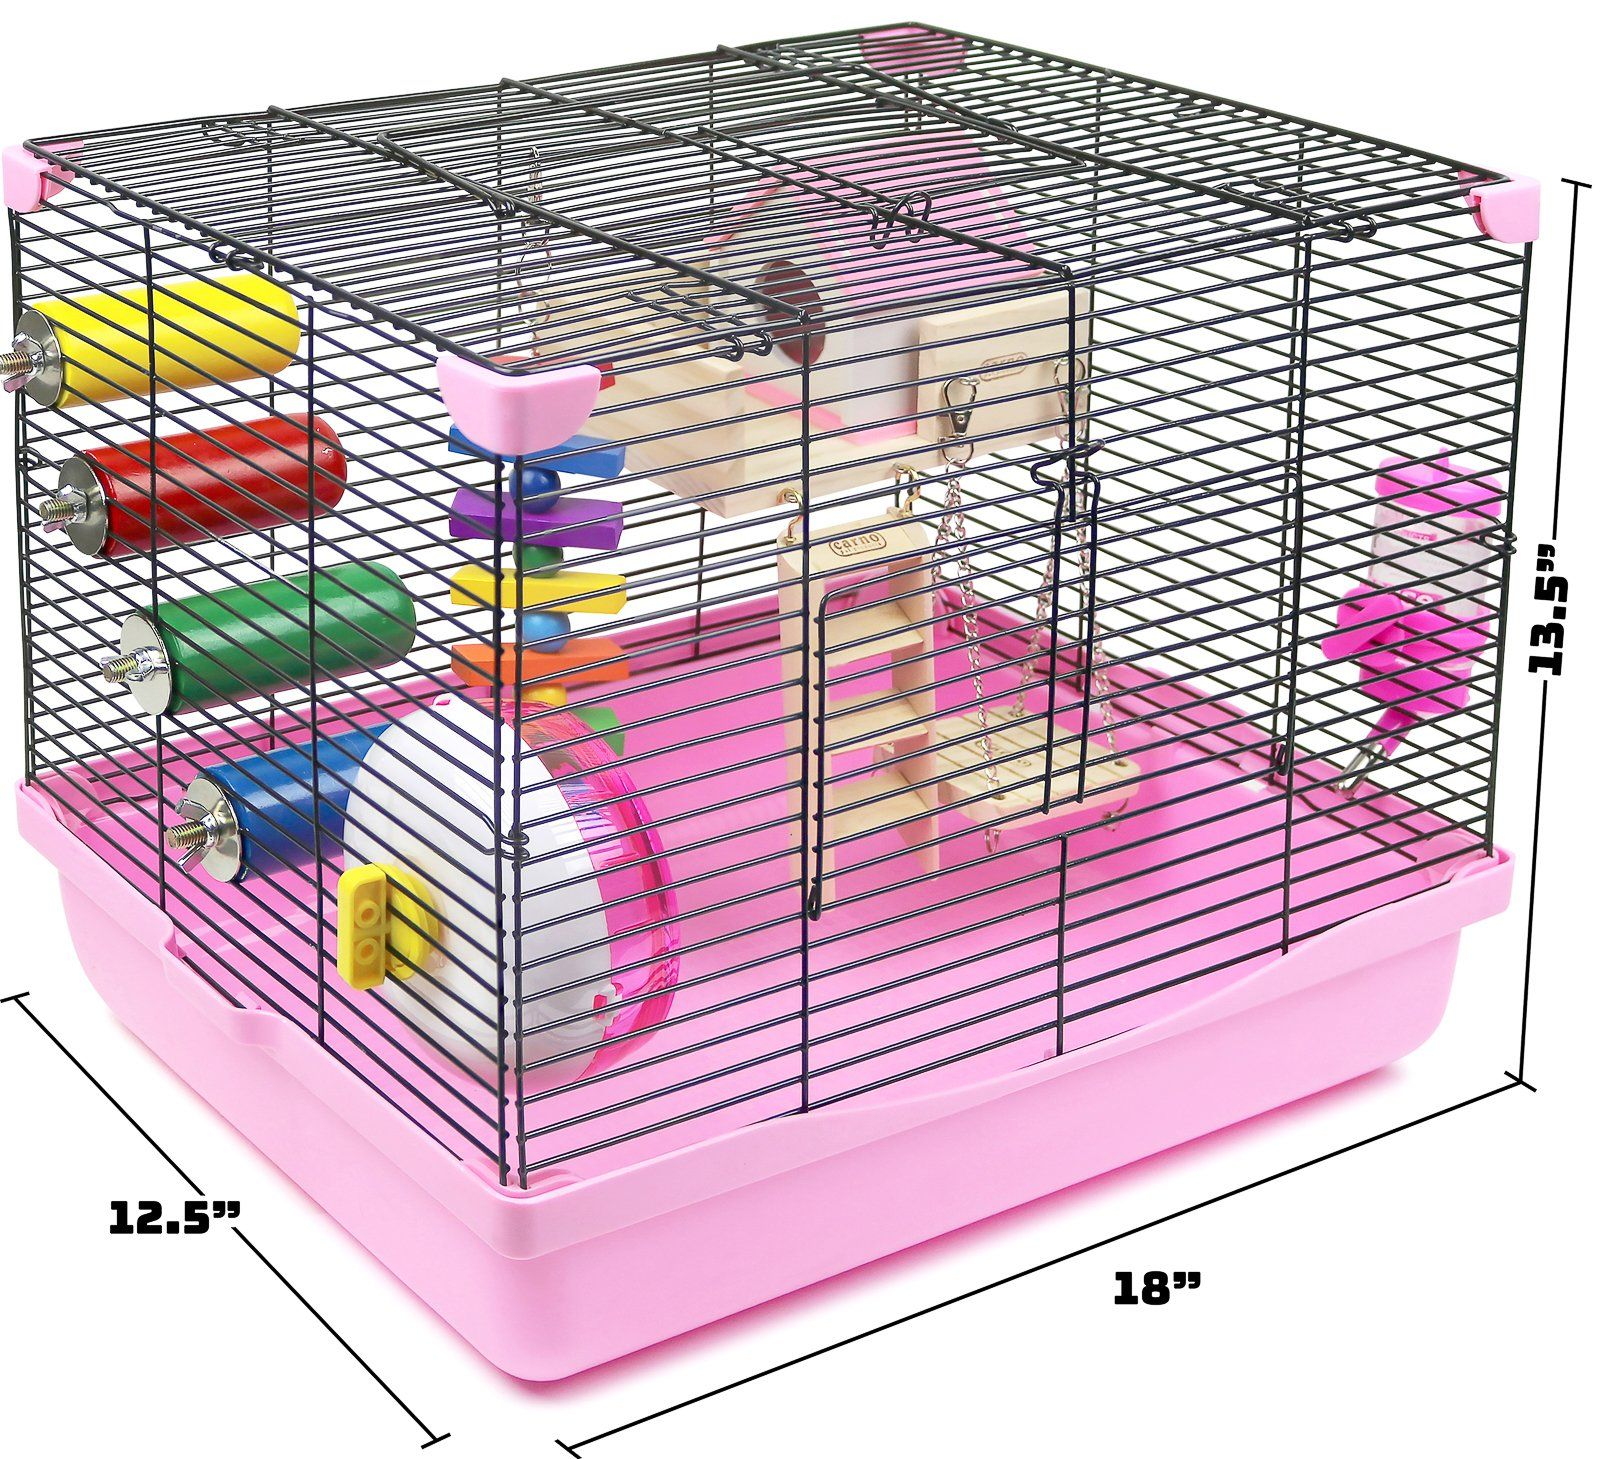 Galapet Hamster And Gerbil Cage Habitat With Toys Pink Read